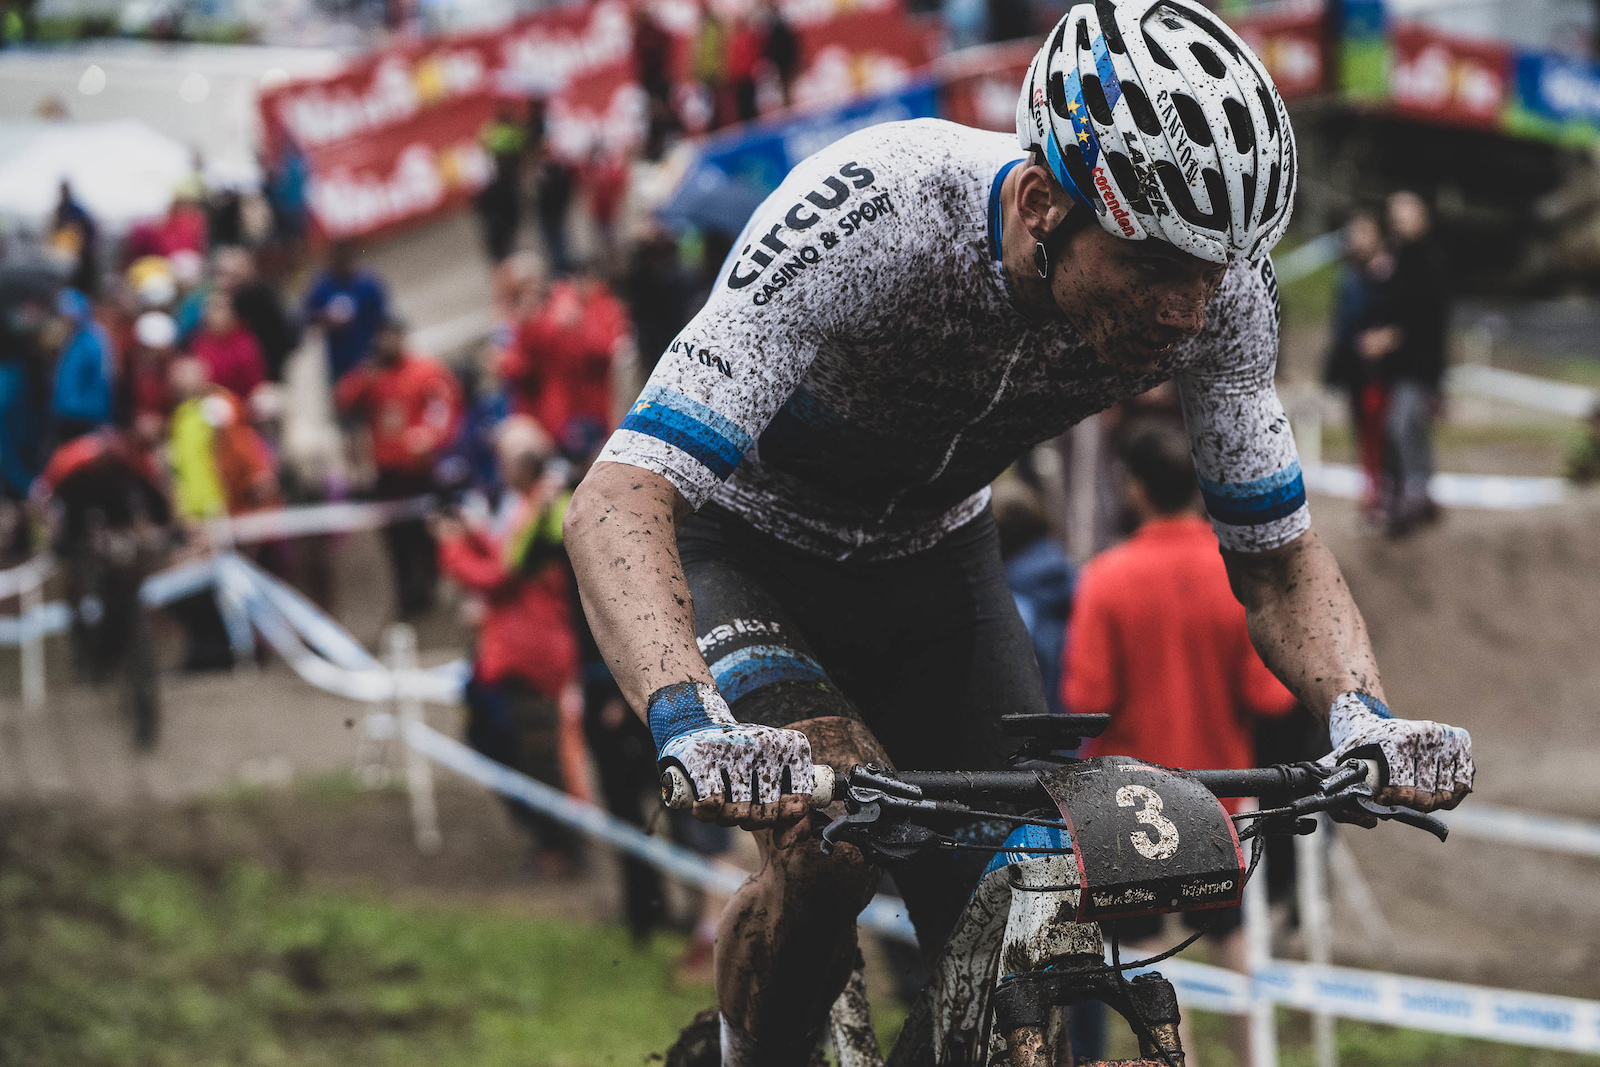 The track and conditions couldn t have been any better suited to Mathieu van der Poel.